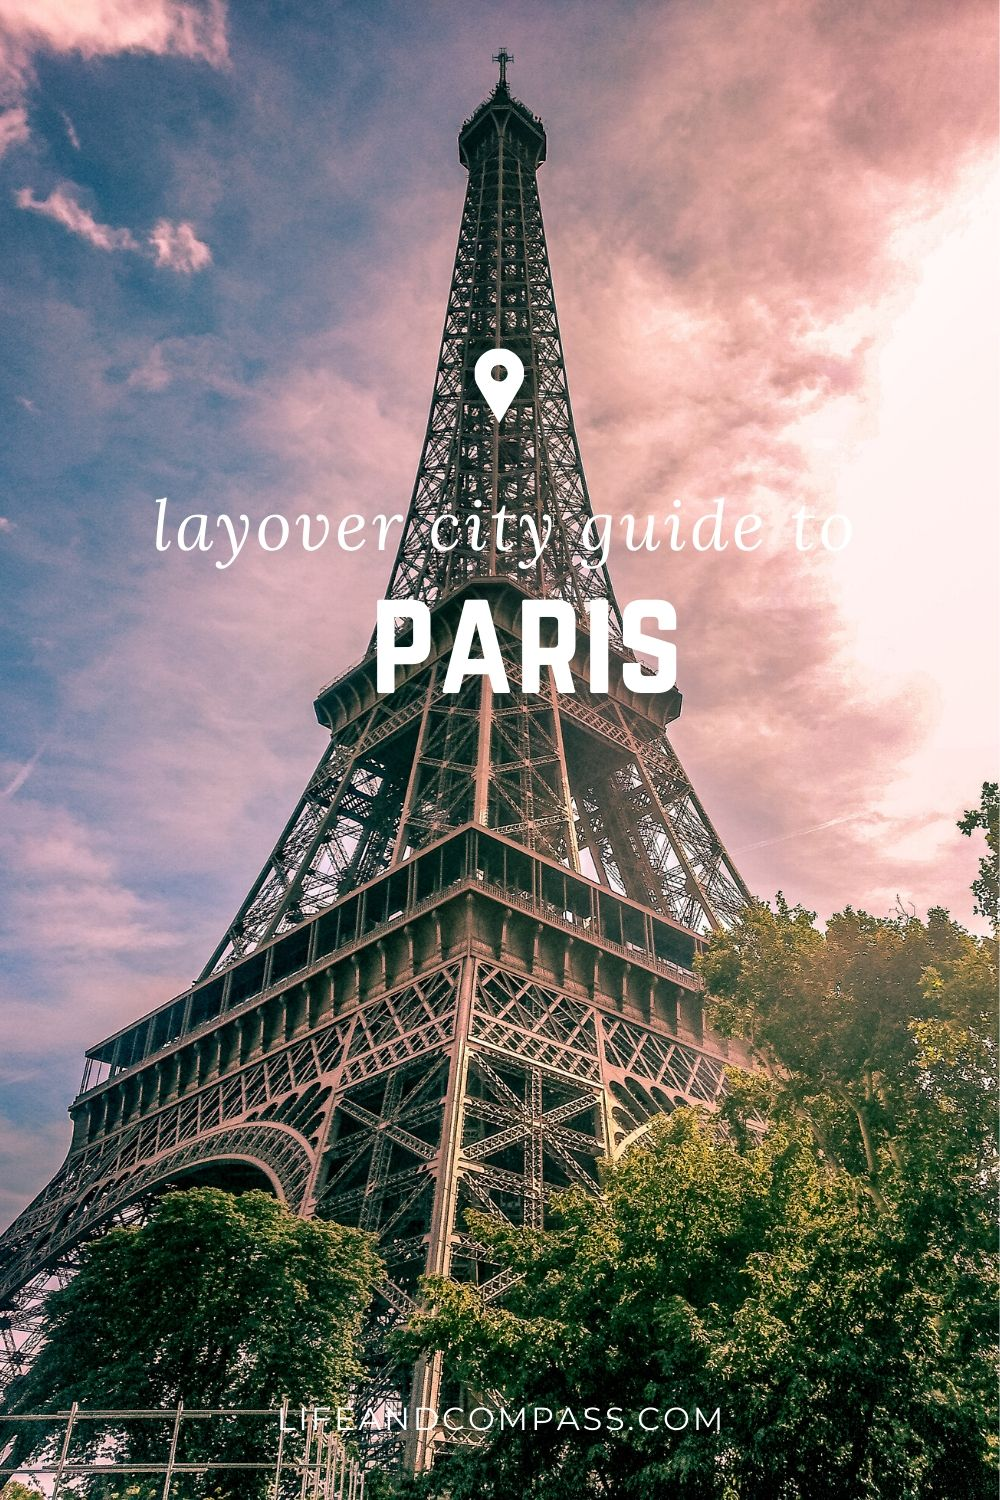 The best part was that I got to have a long layover in Paris which isn't really the worst thing to happen to a traveler. I mean, I get to visit Paris en route to Greece? Totally up for it!